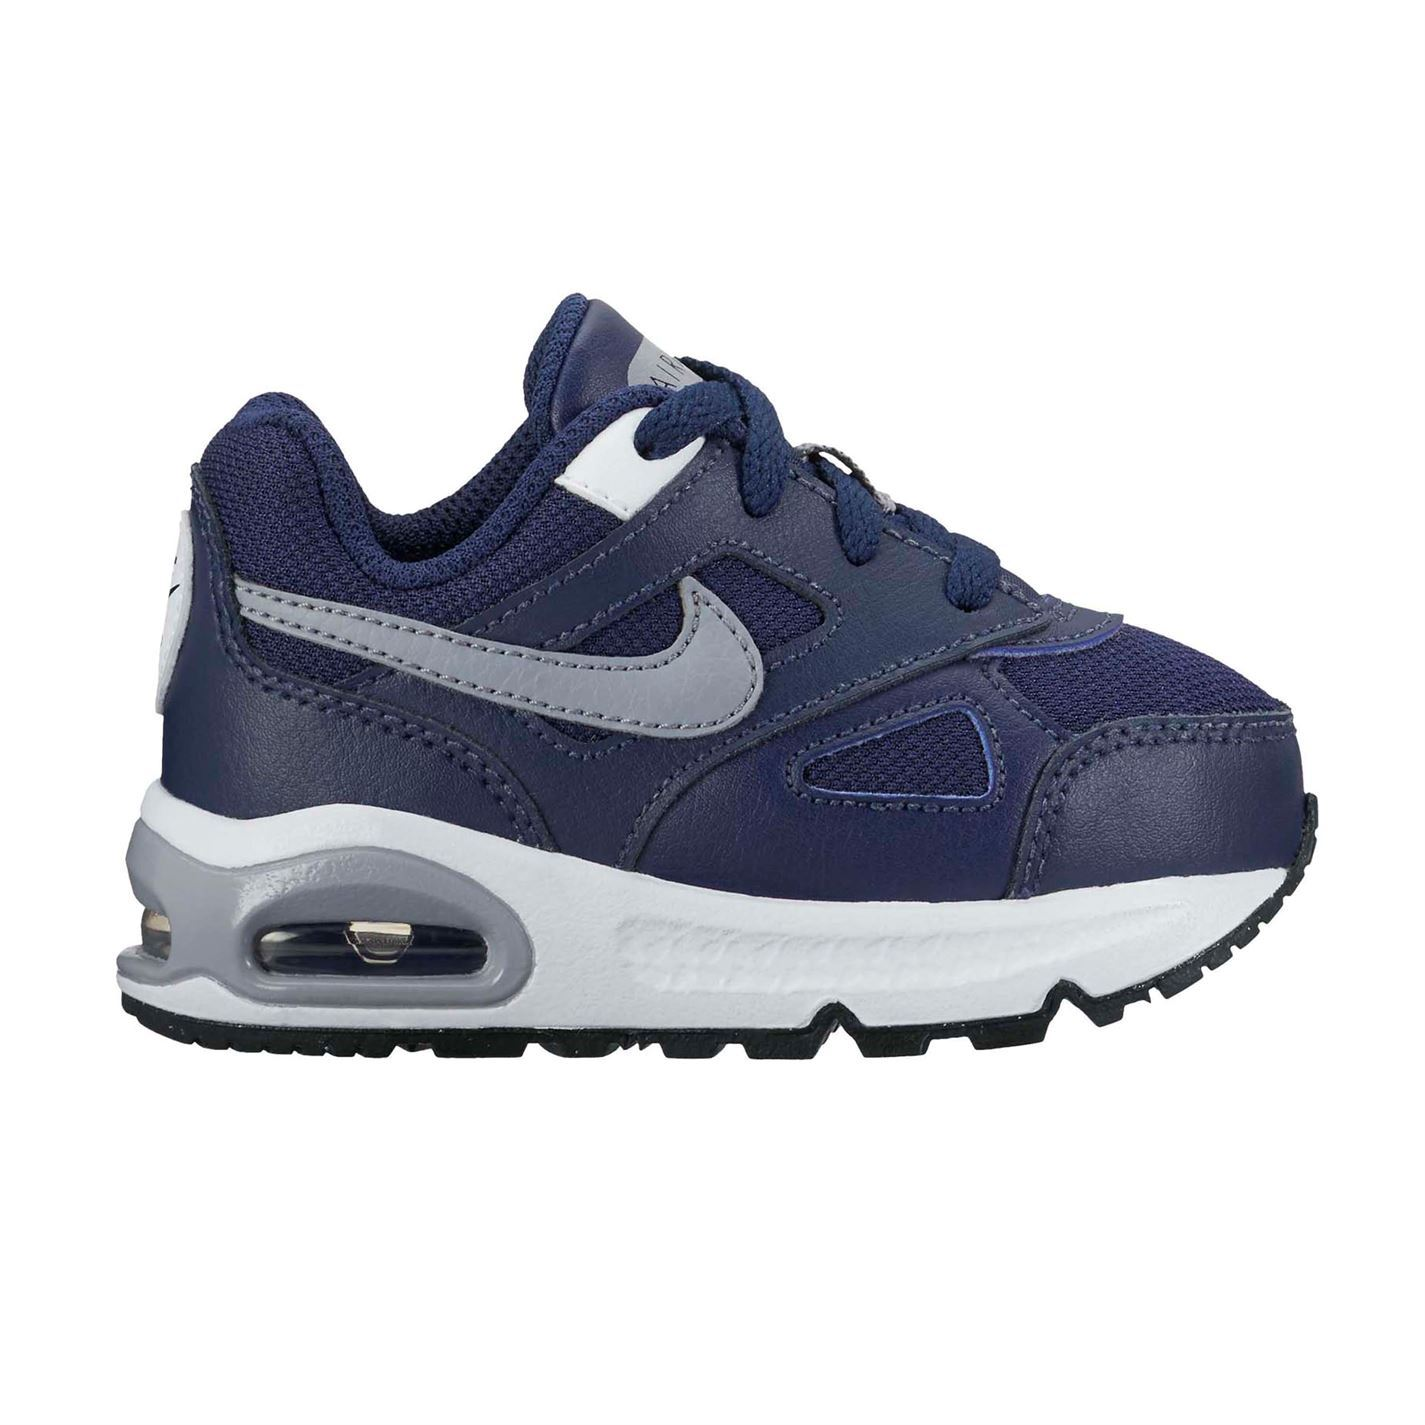 4d47dbb7367bdf ... Nike Air Max Ivo Infant Boys Trainers Shoes Footwear